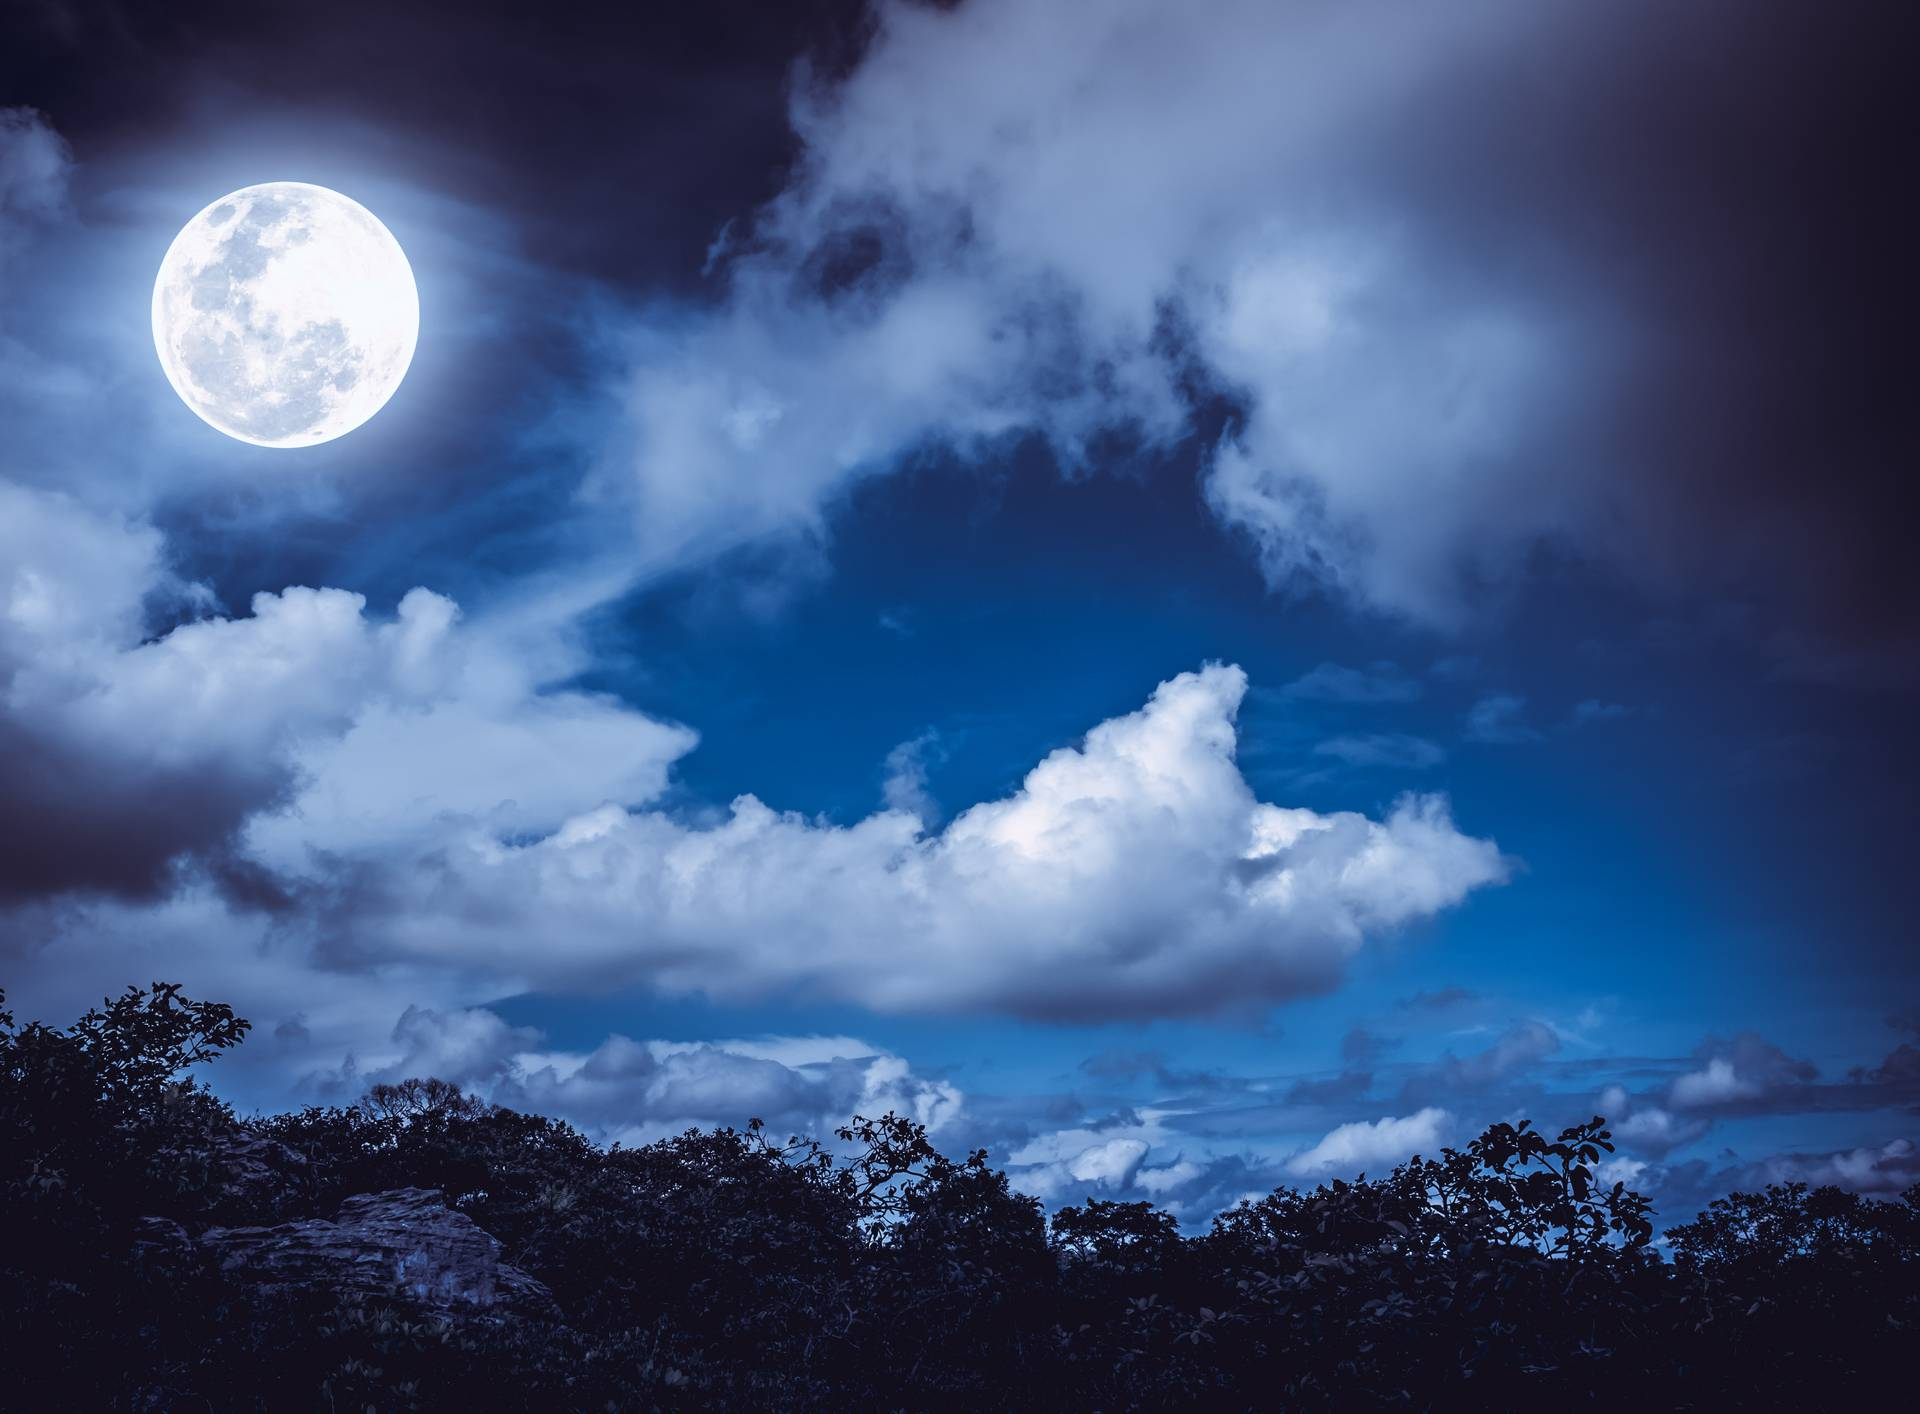 Silhouettes of tree and nighttime sky with clouds, full moon.